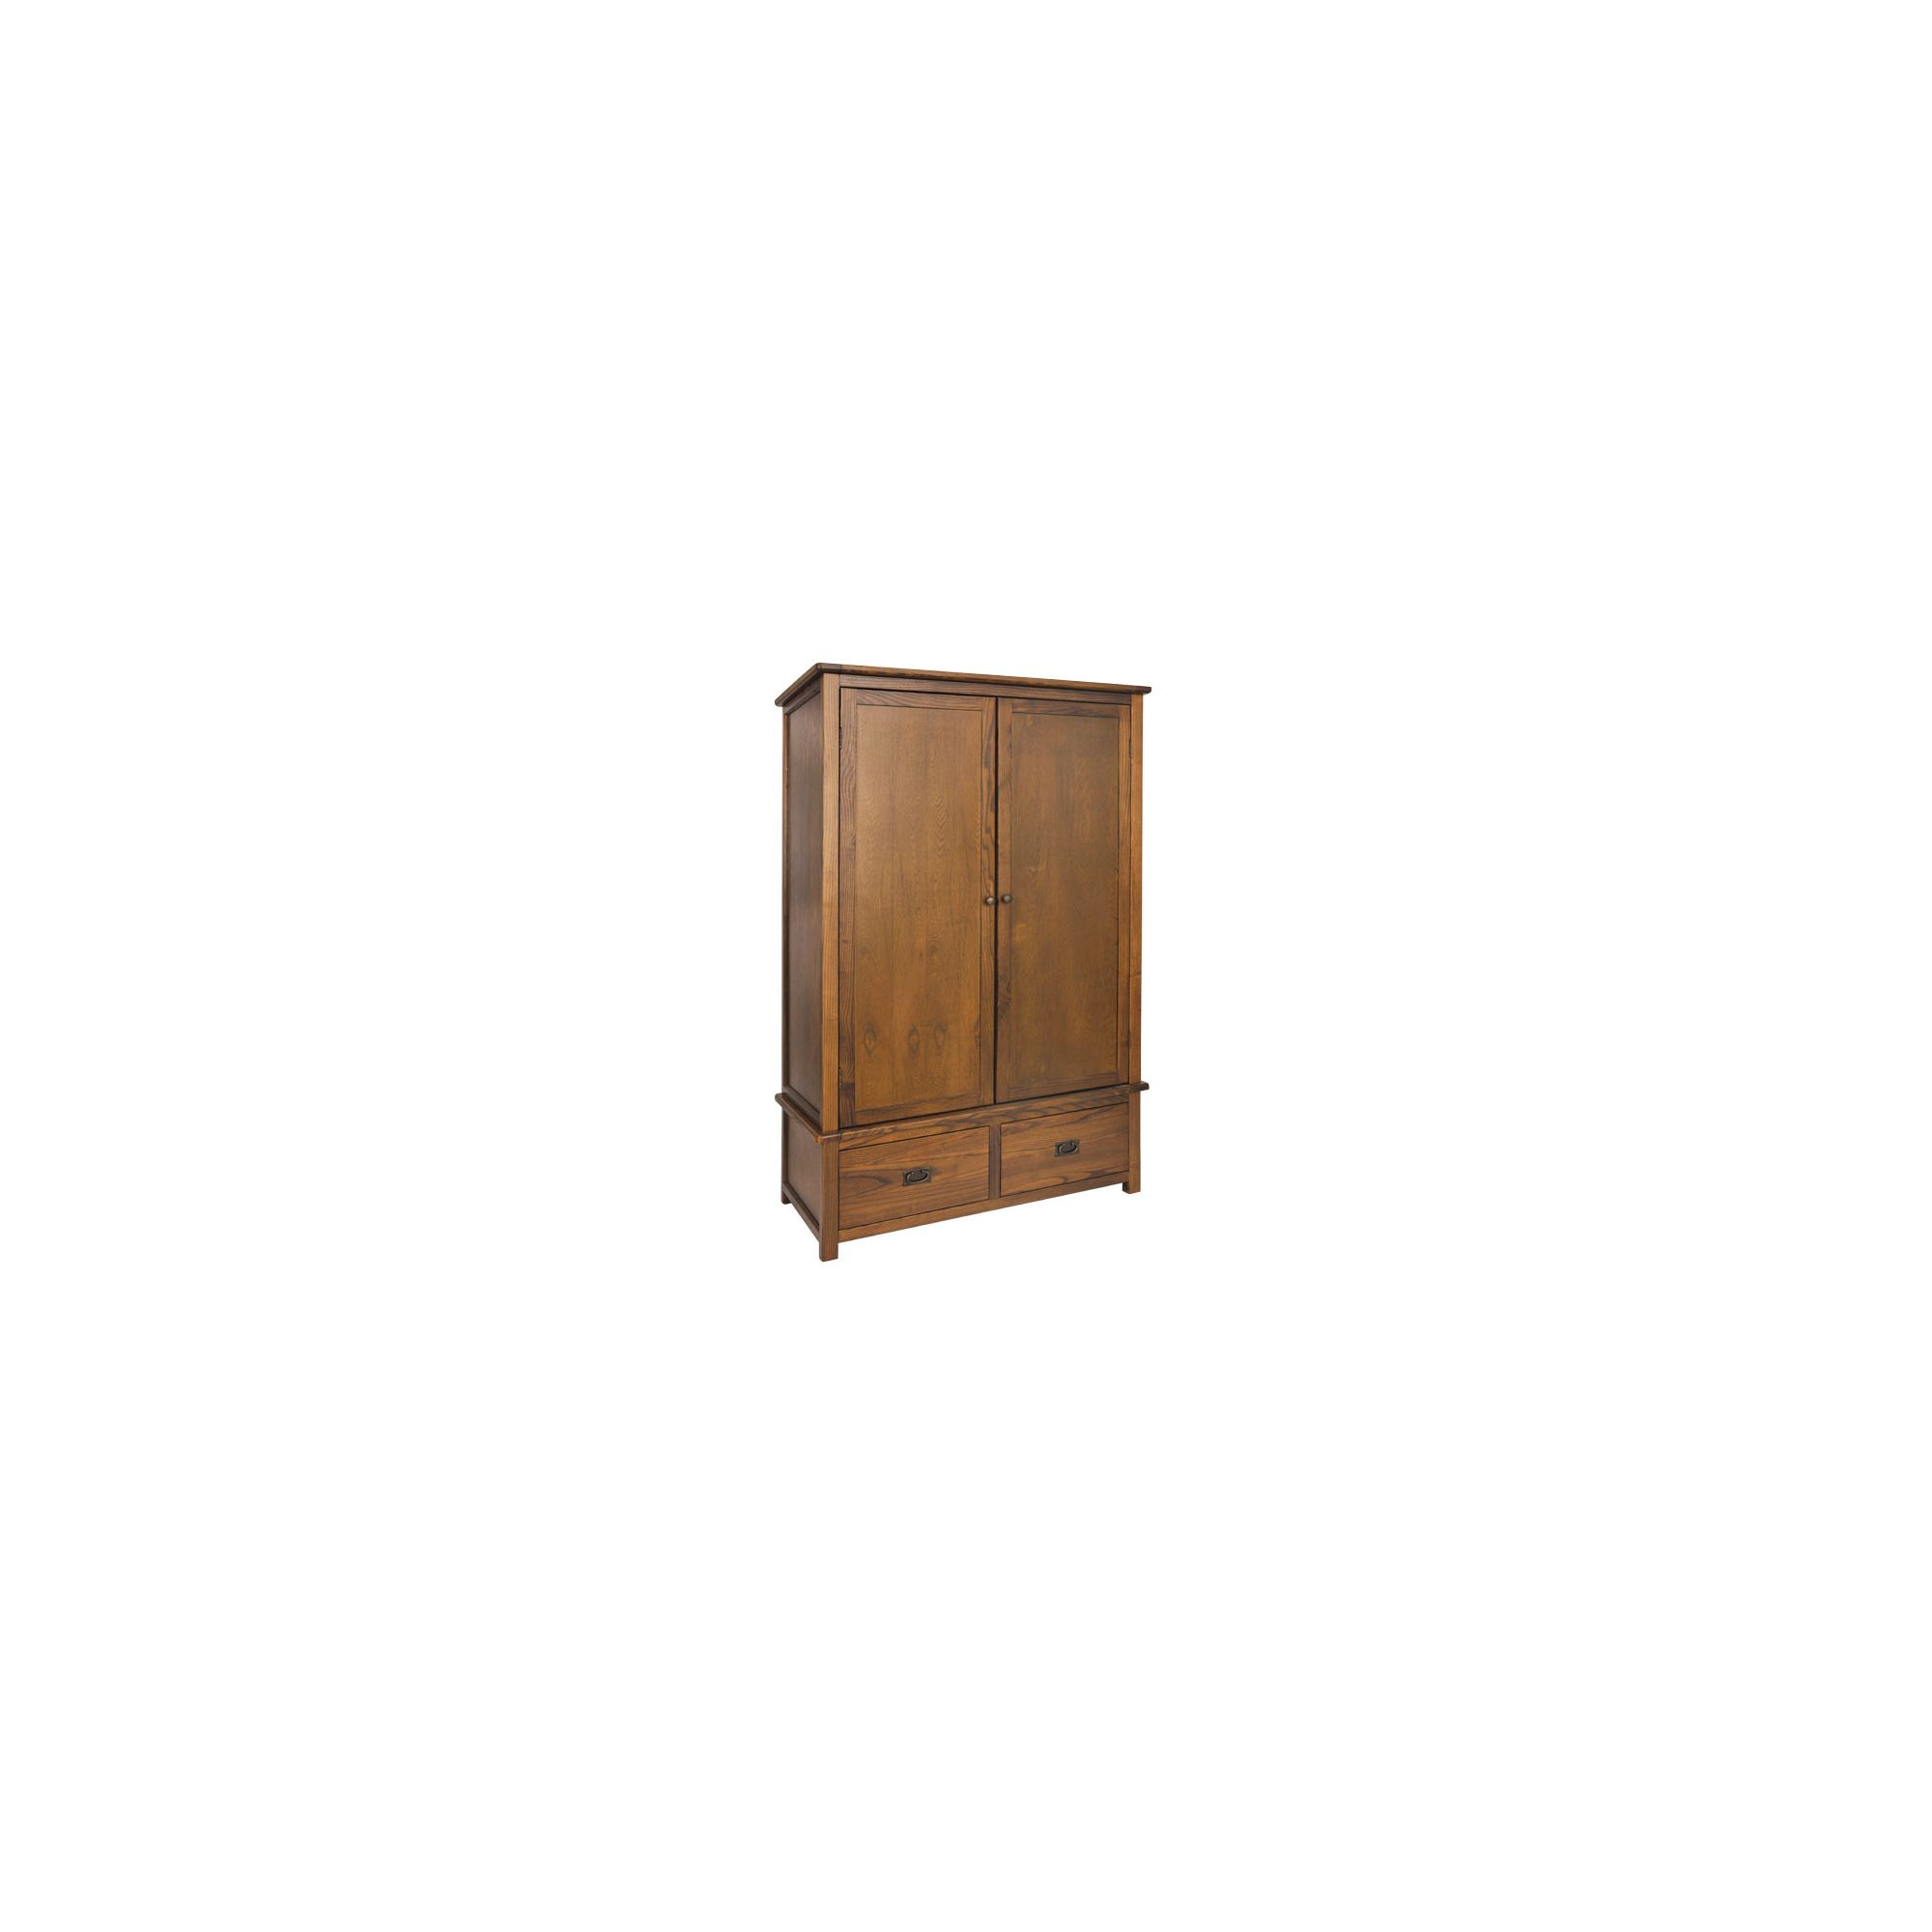 Home Essence Cambridge 2 Door 2 Drawer Wardrobe at Tesco Direct